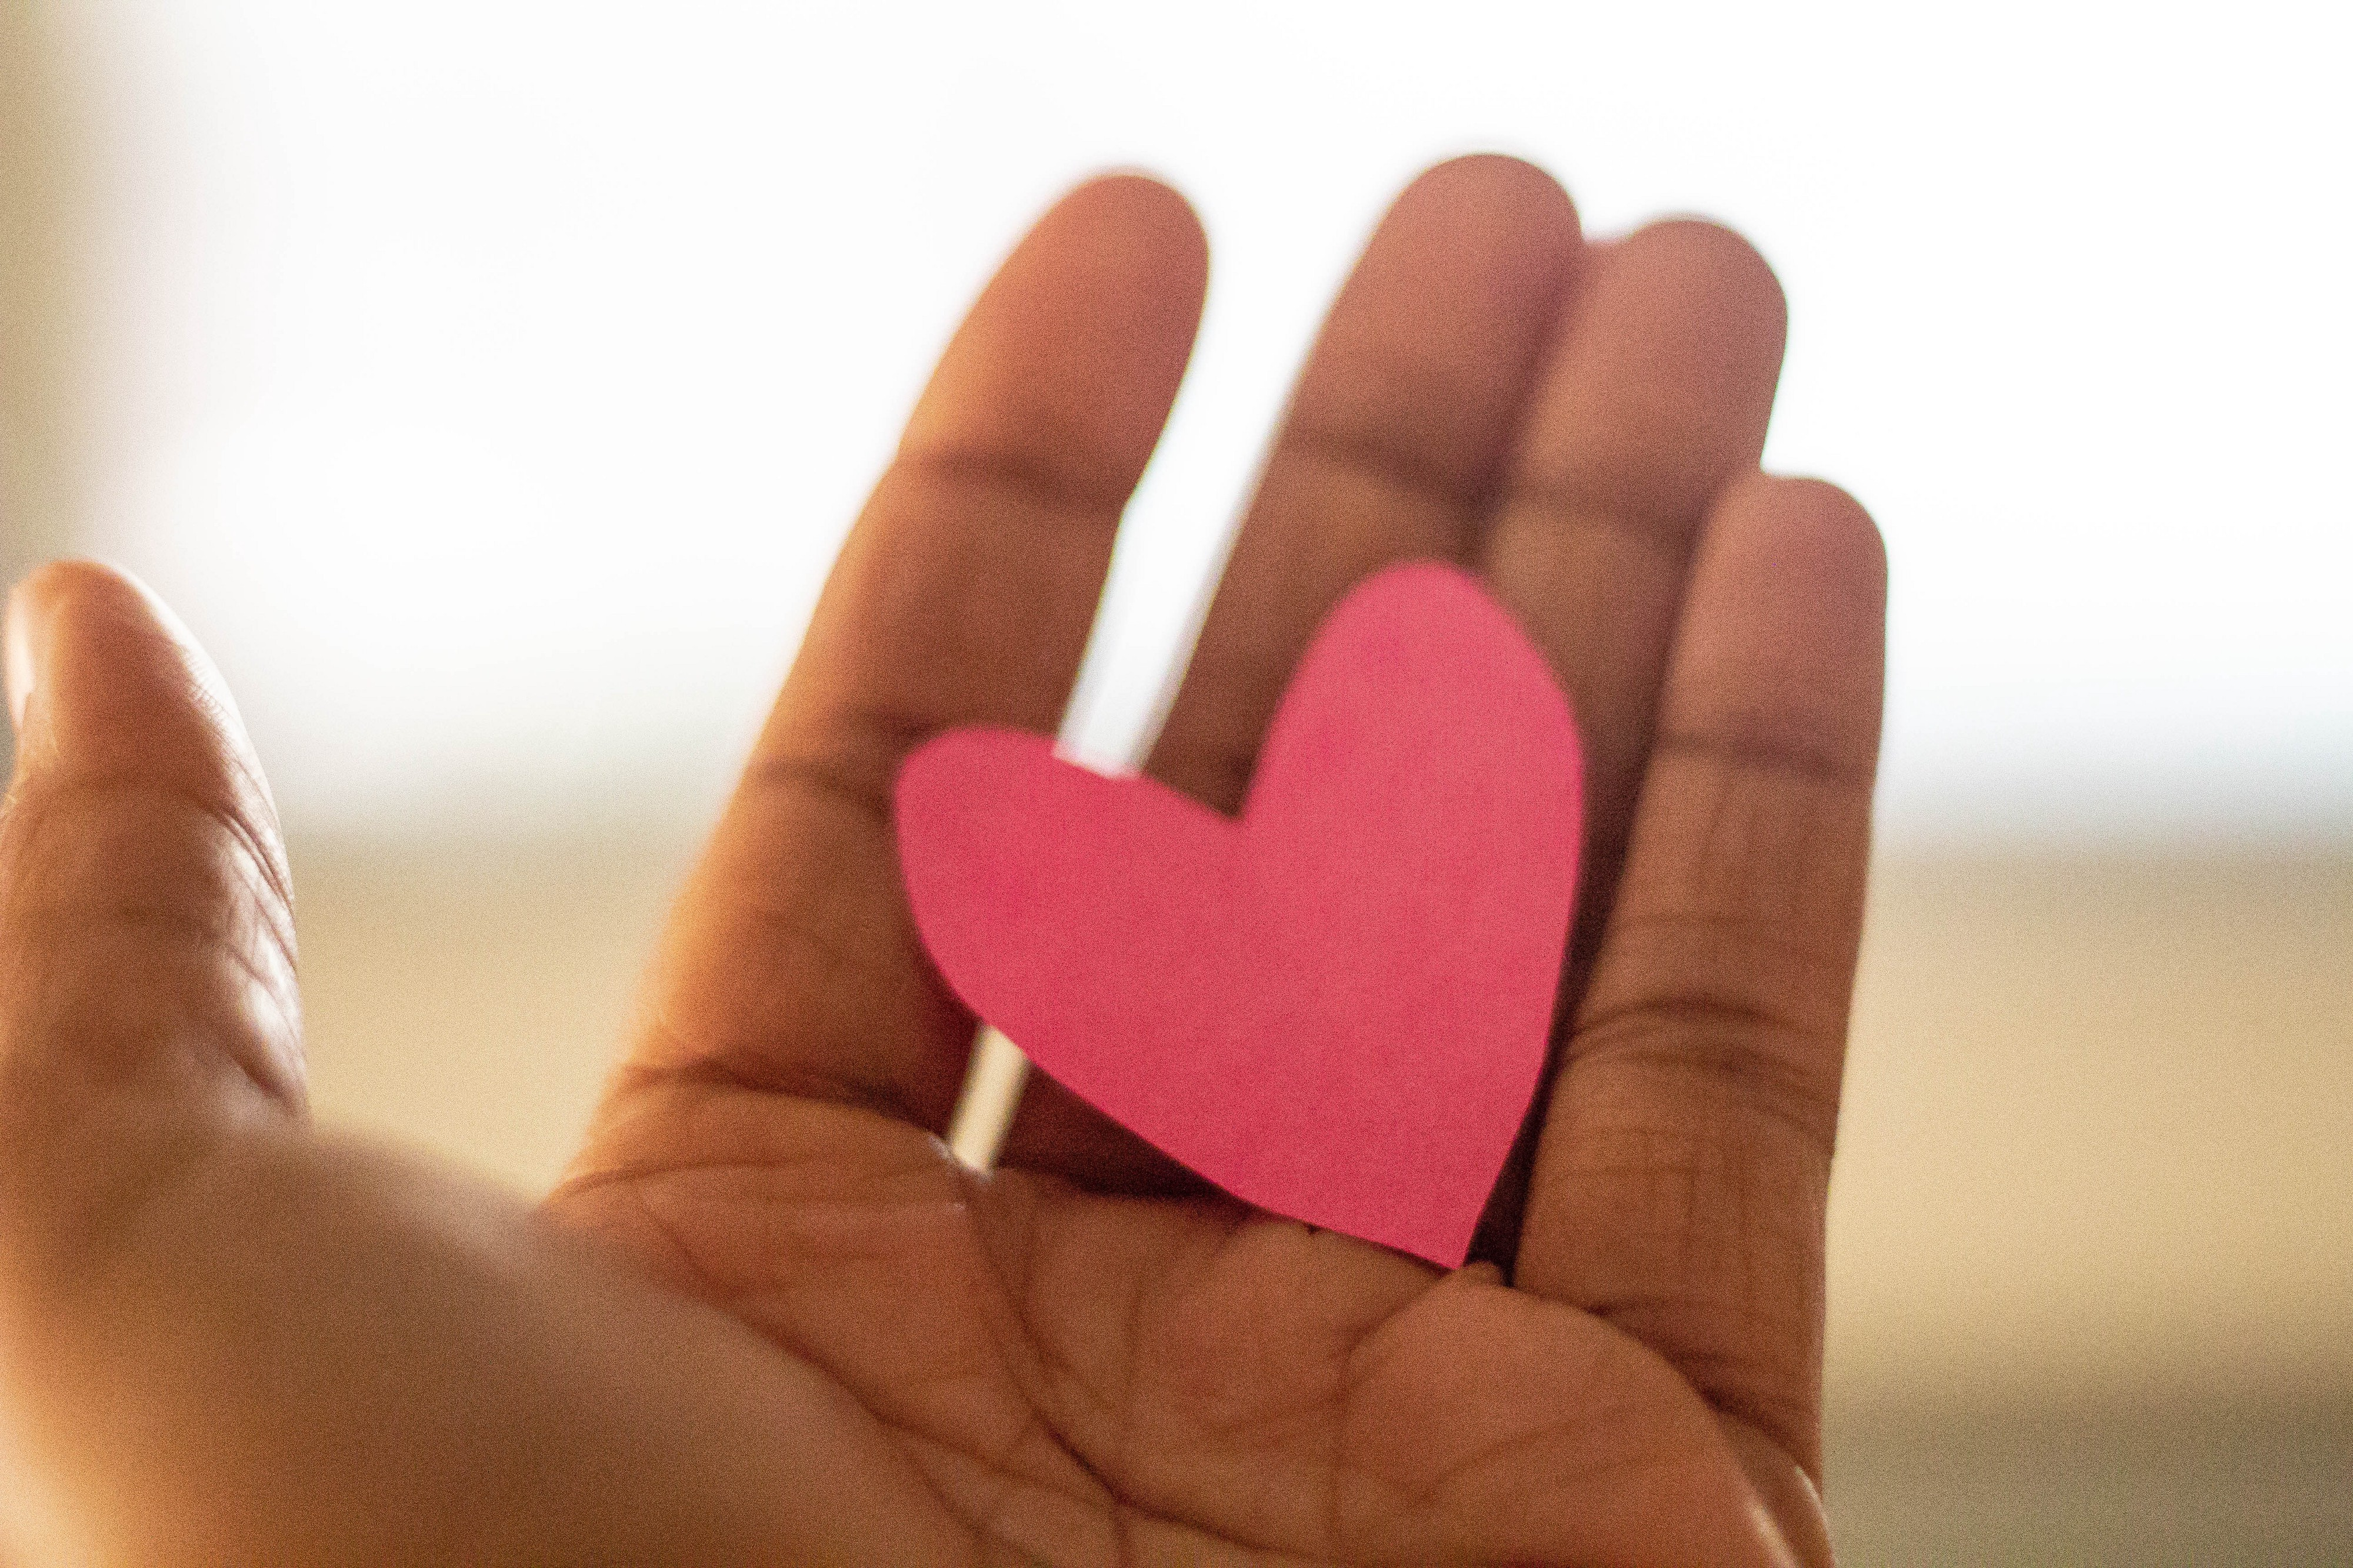 A hand outstretched with red paper cut in the shape of a cartoon heart